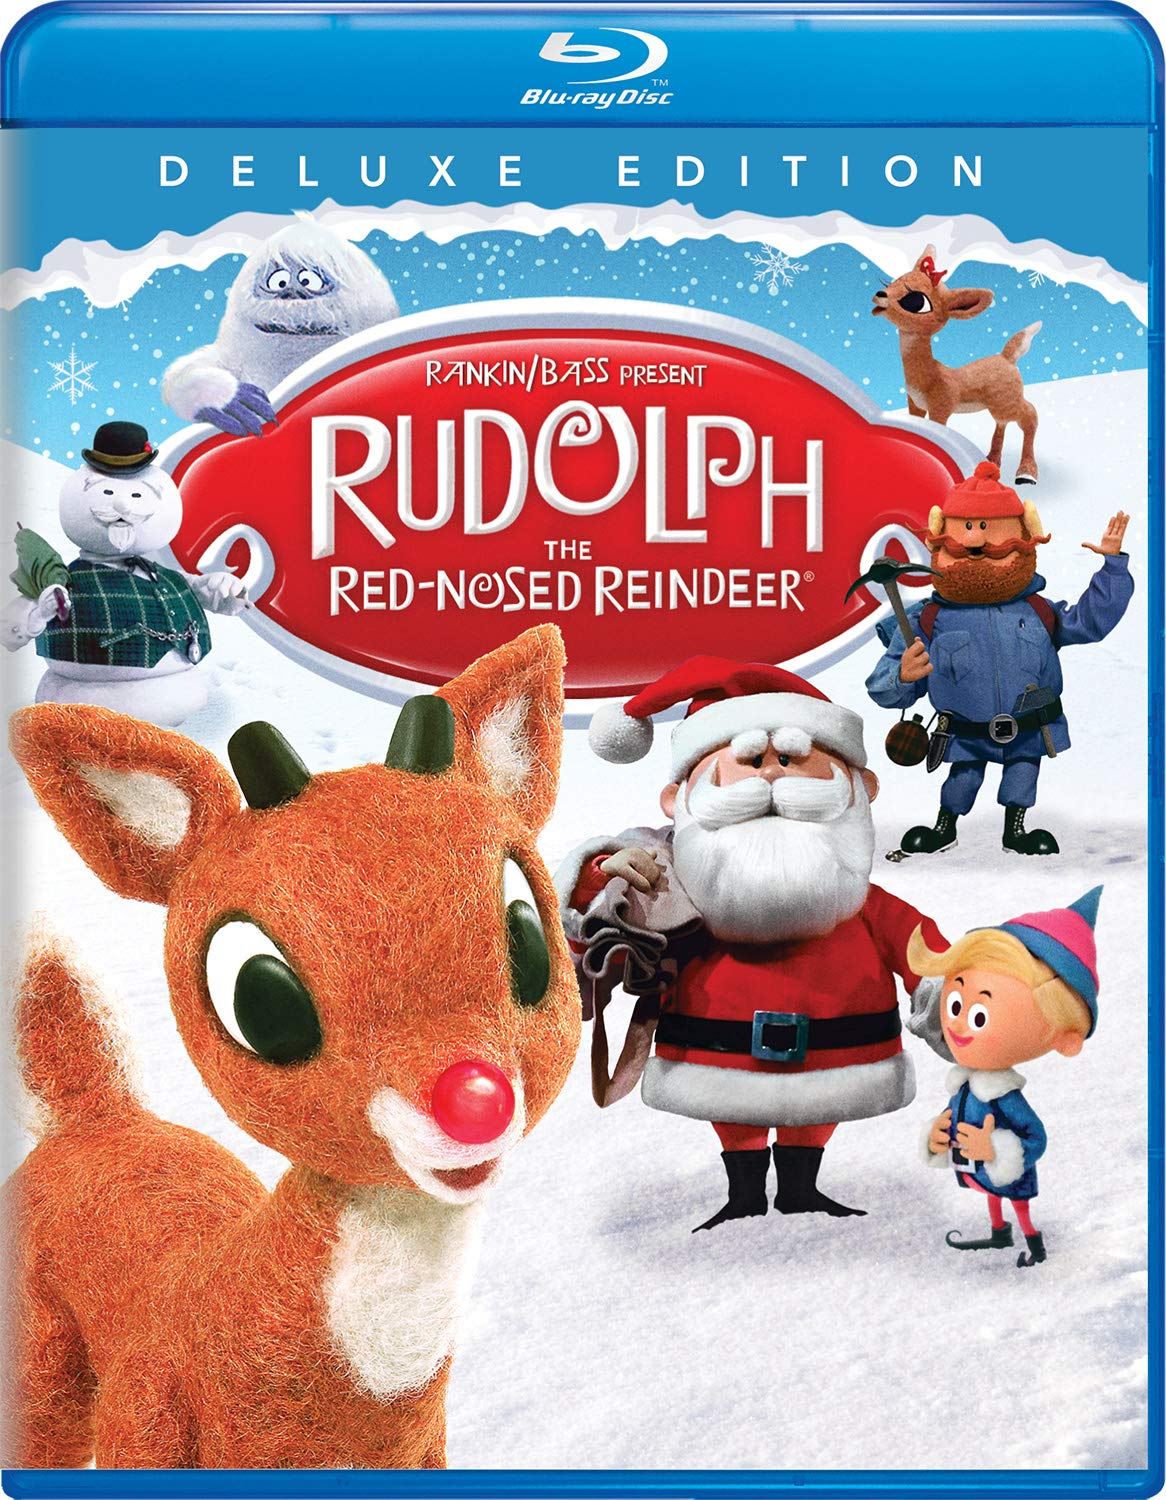 Blu-ray : Rudolph The Red-nosed Reindeer (Deluxe Edition)